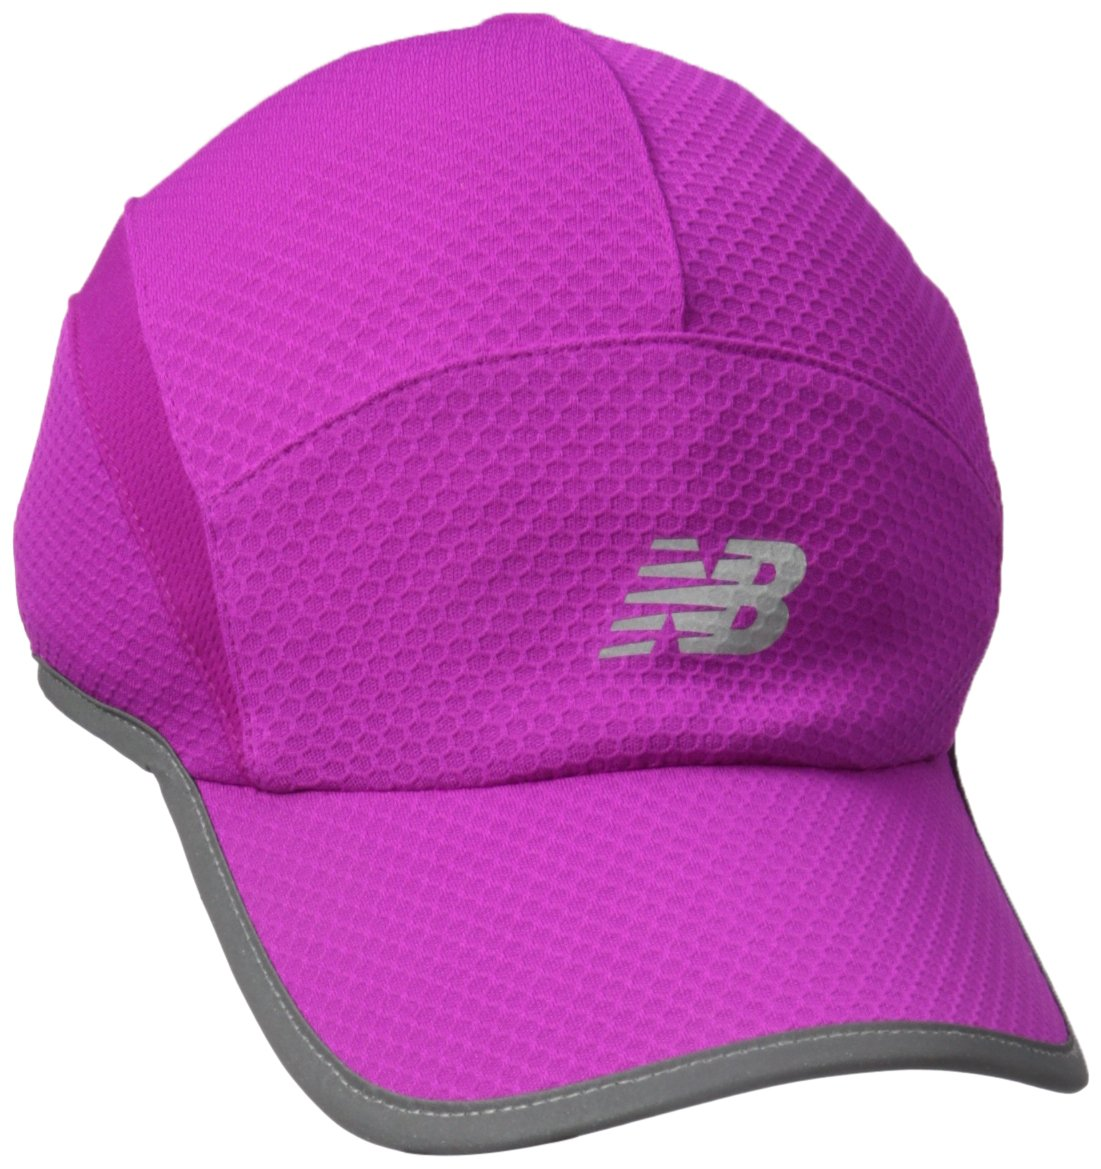 New Balance 5 Panel Performance Hat, Poison Berry, One Size